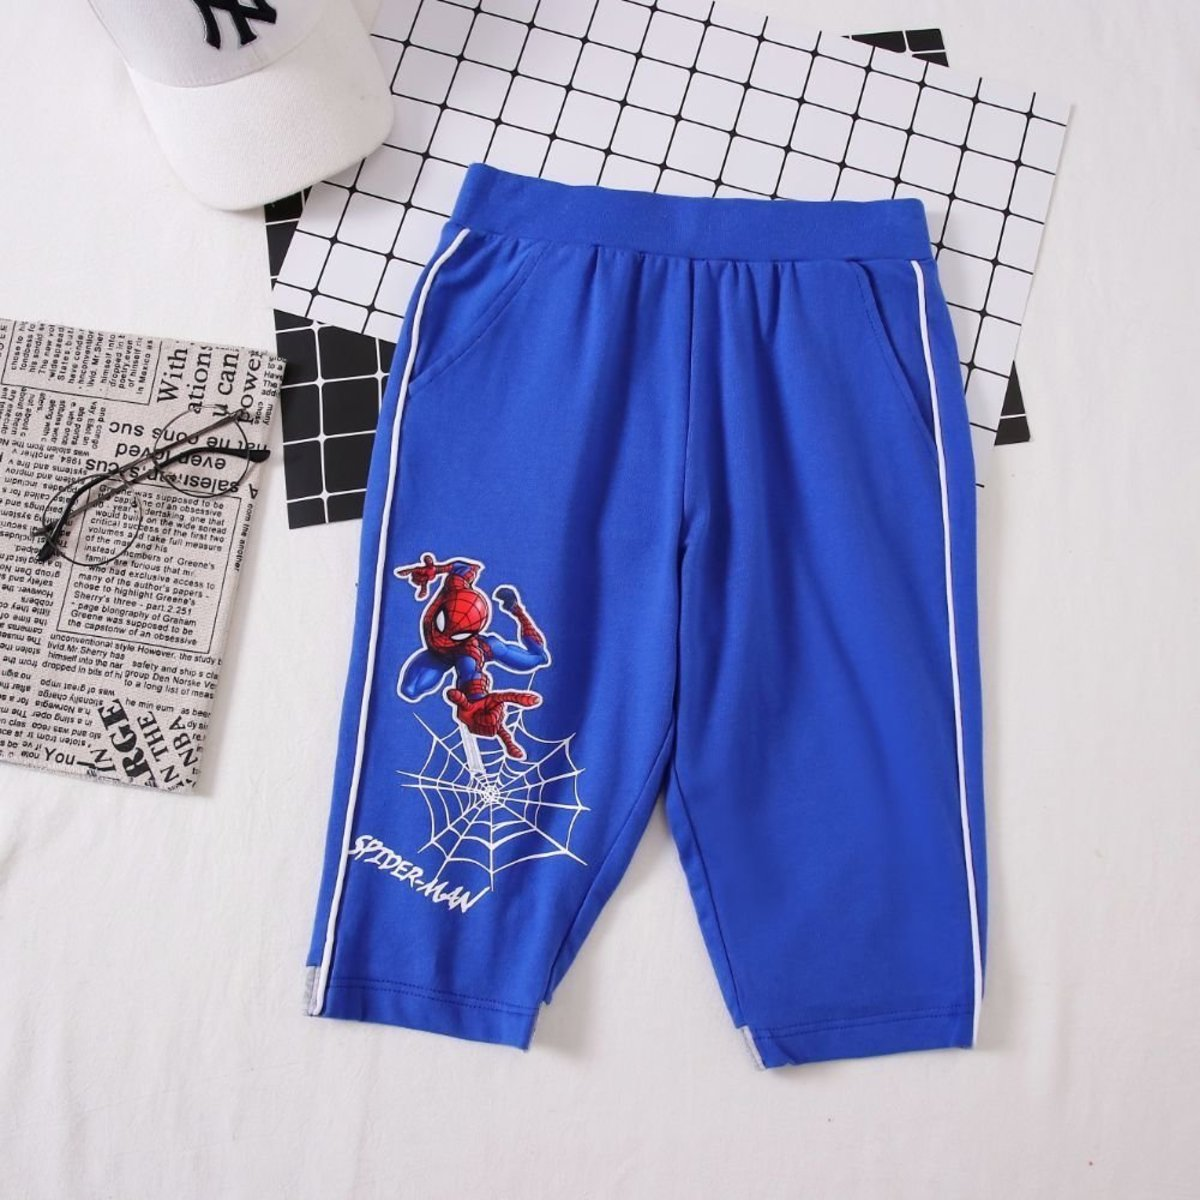 SHORTS [Licensed by Disney]